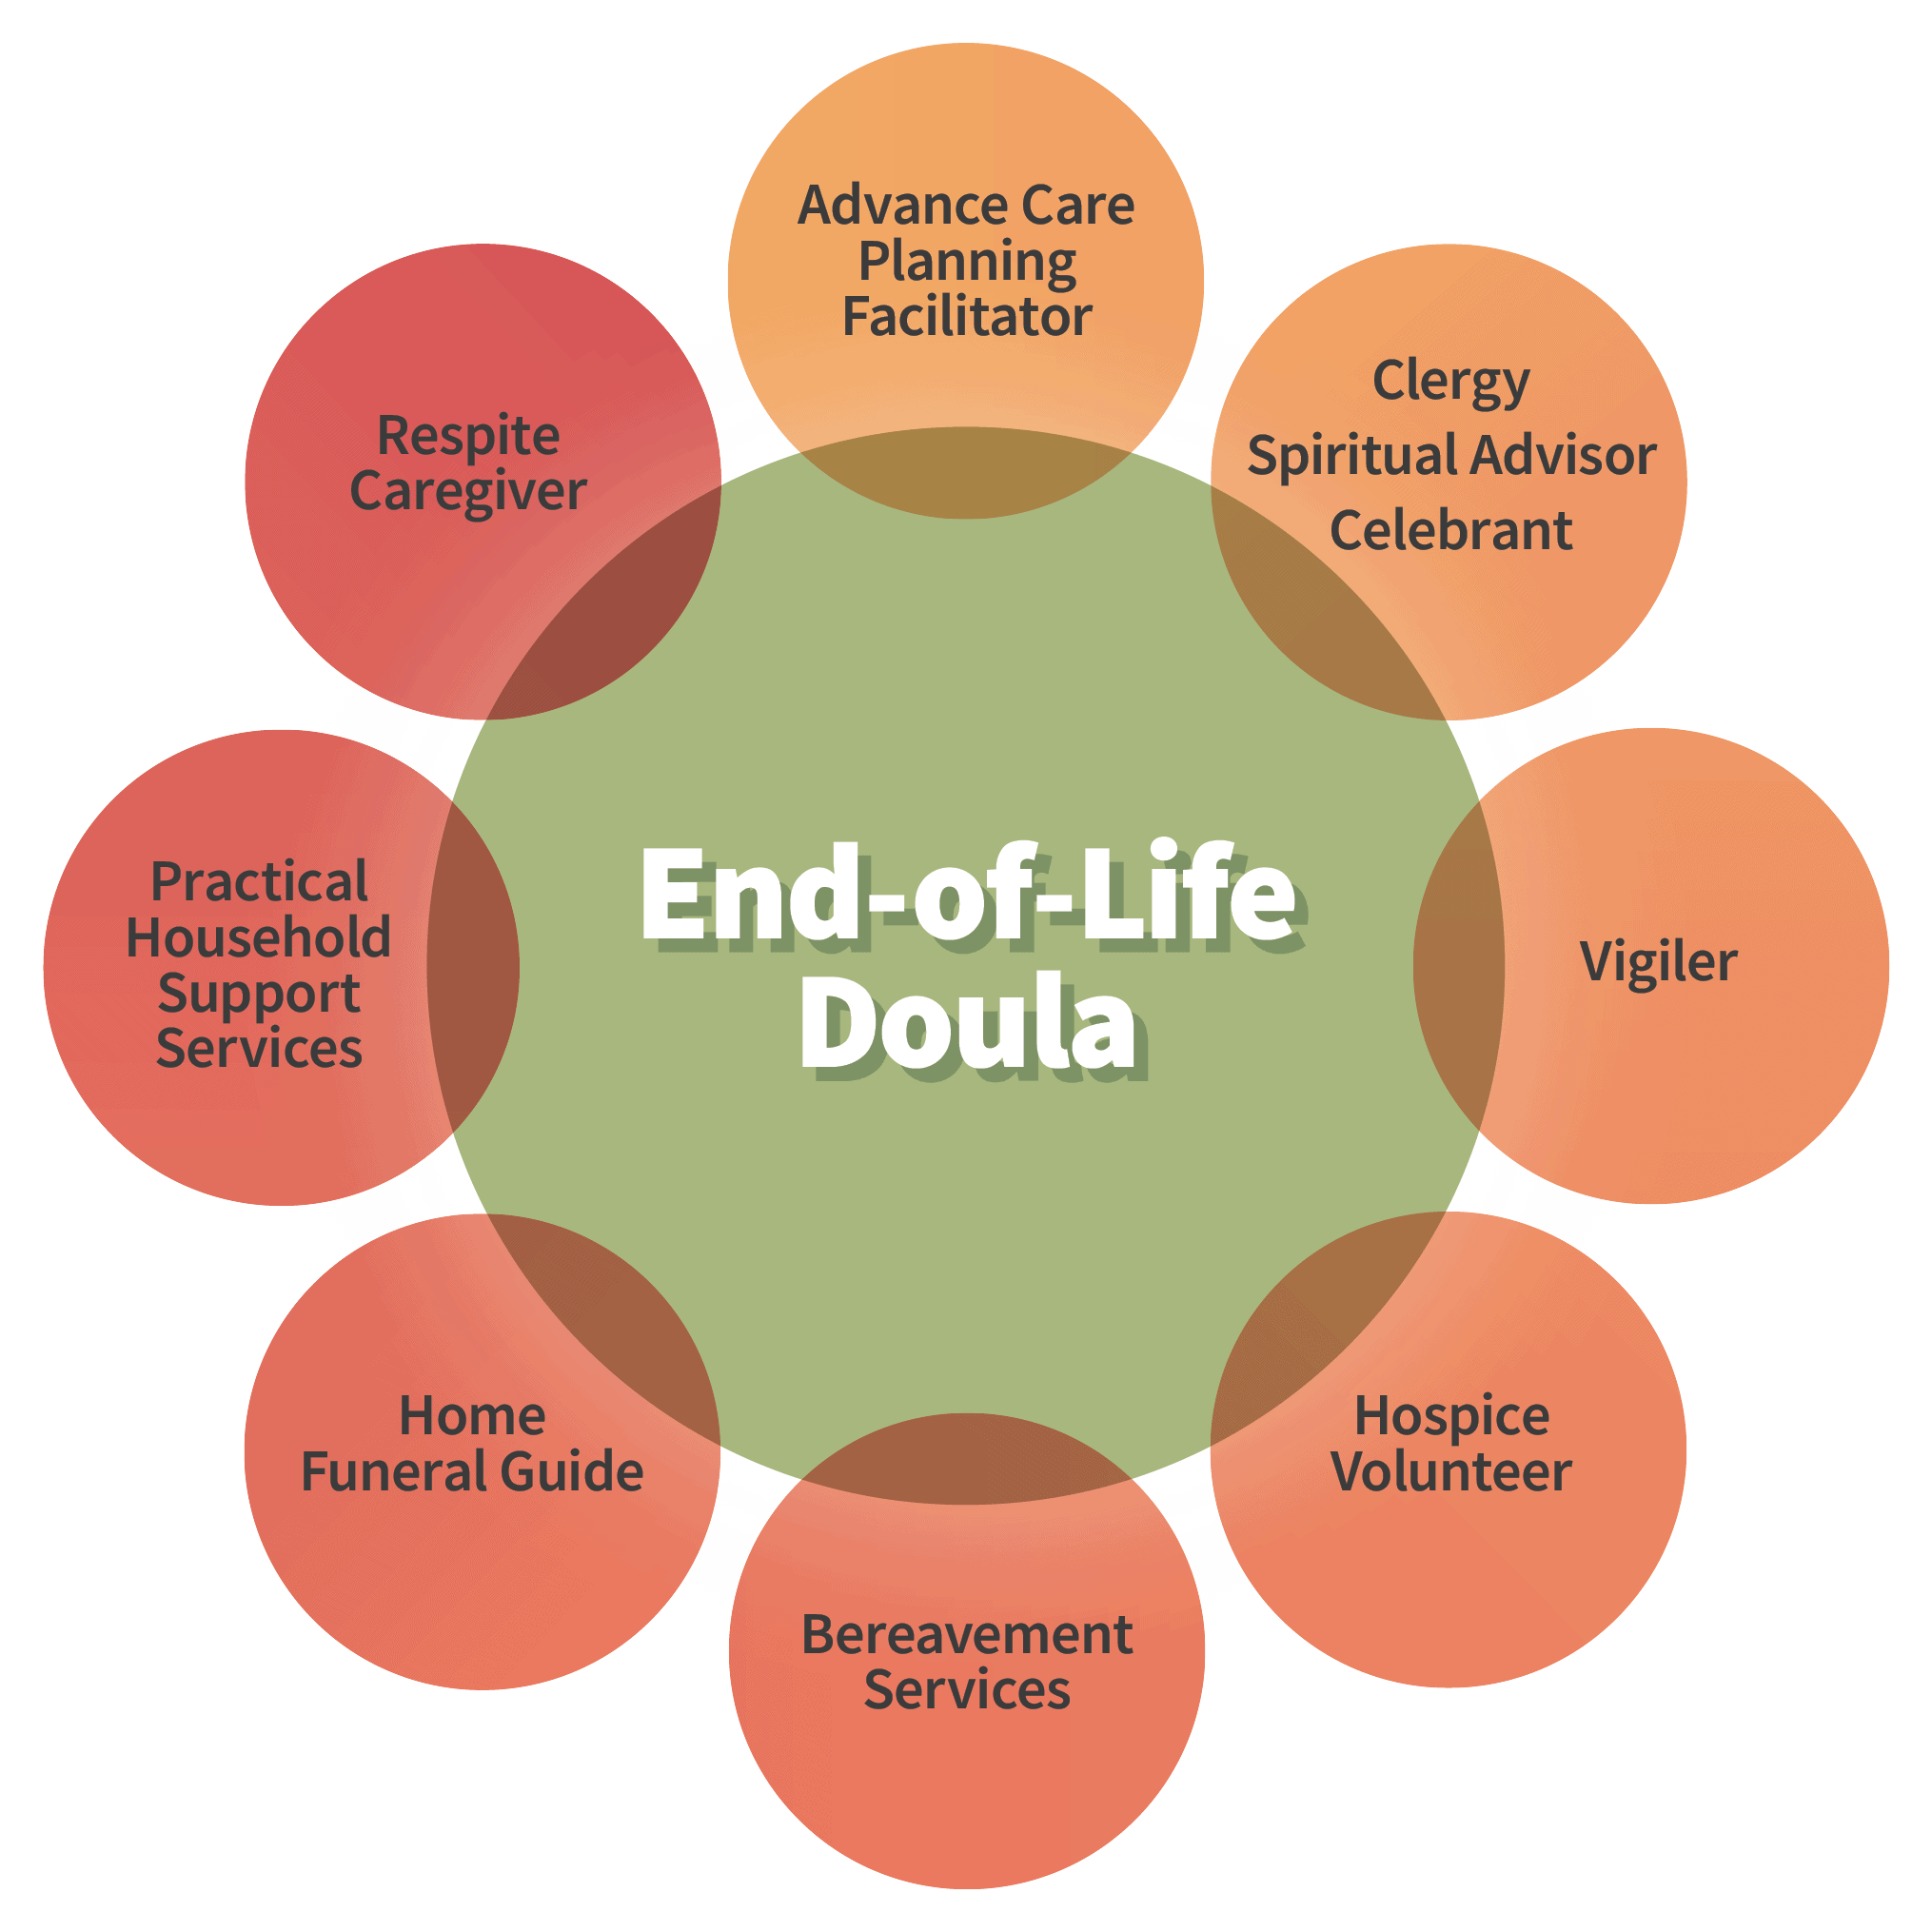 what is an end-of-life doula